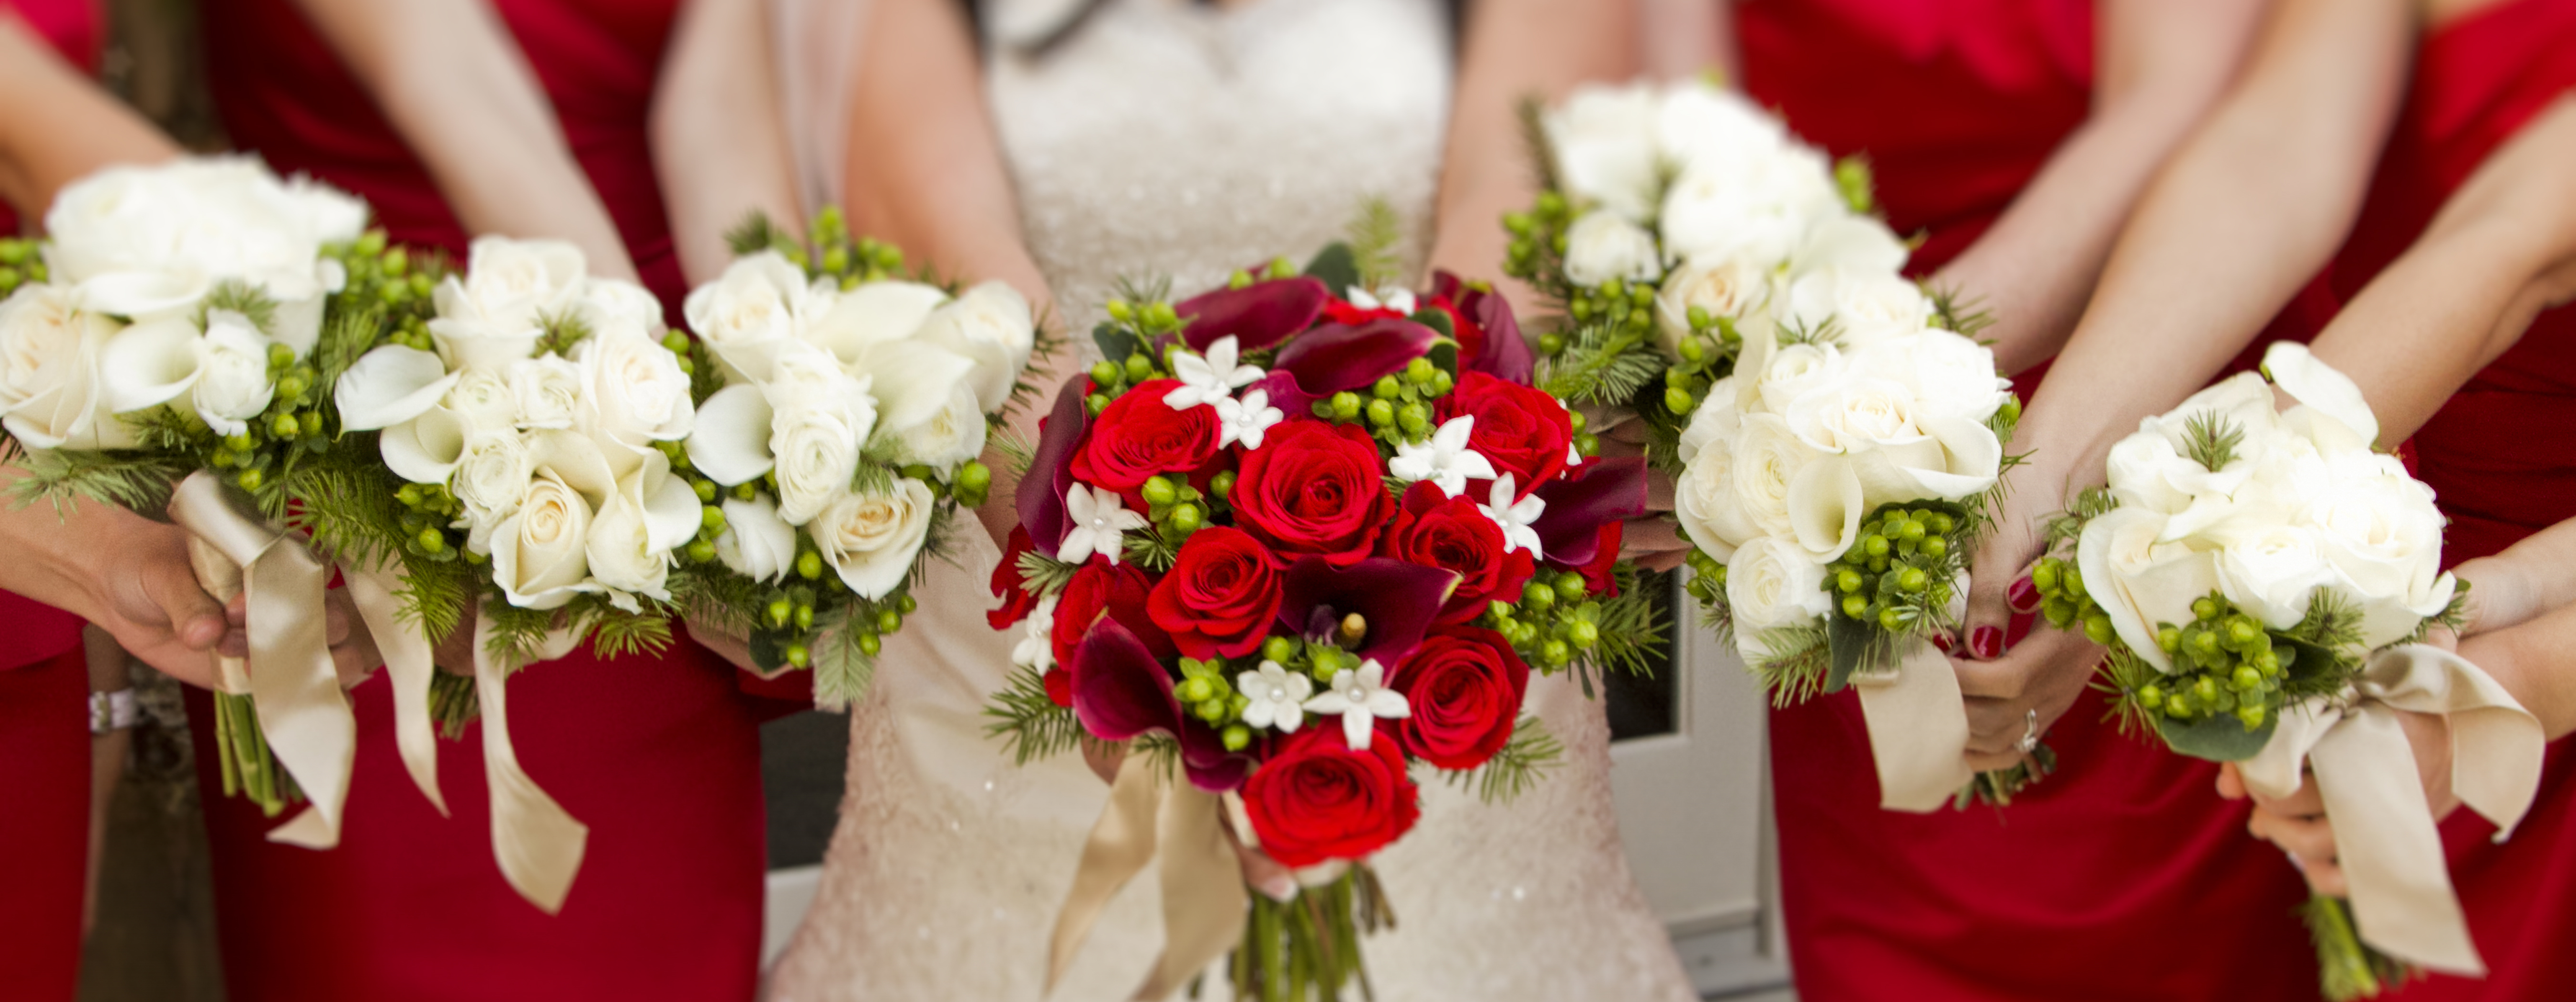 Red-roses-bridal-bouquet